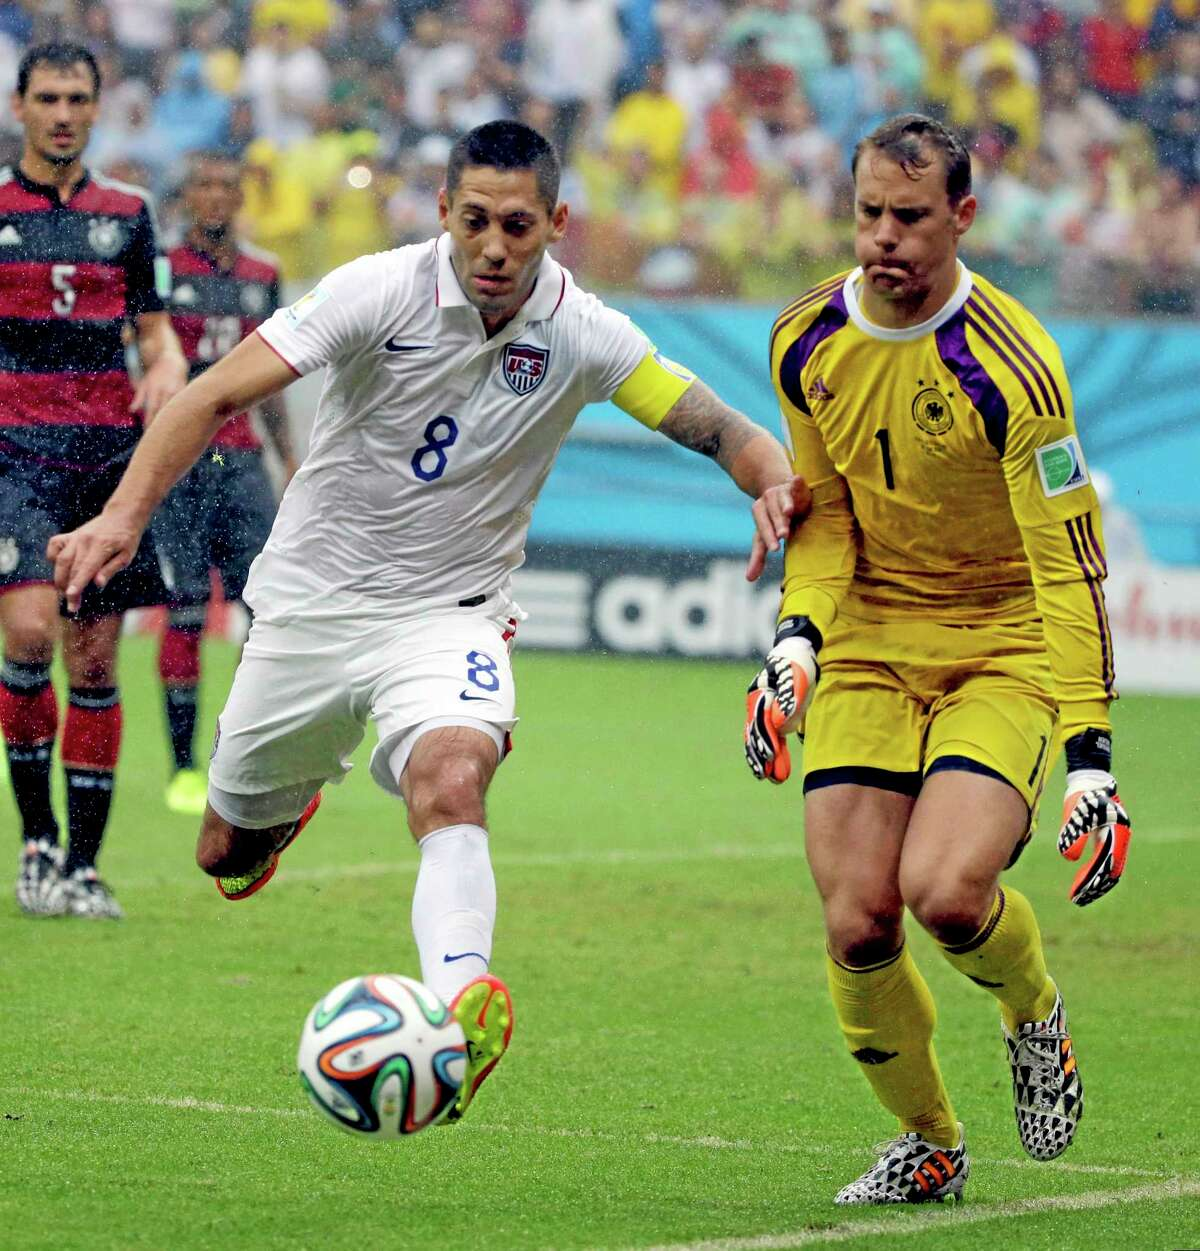 The United States' Clint Dempsey chases the ball in front of German goalkeeper Manuel Neuer during their Group G World Cup match Thursday at the Arena Pernambuco in Recife, Brazil.